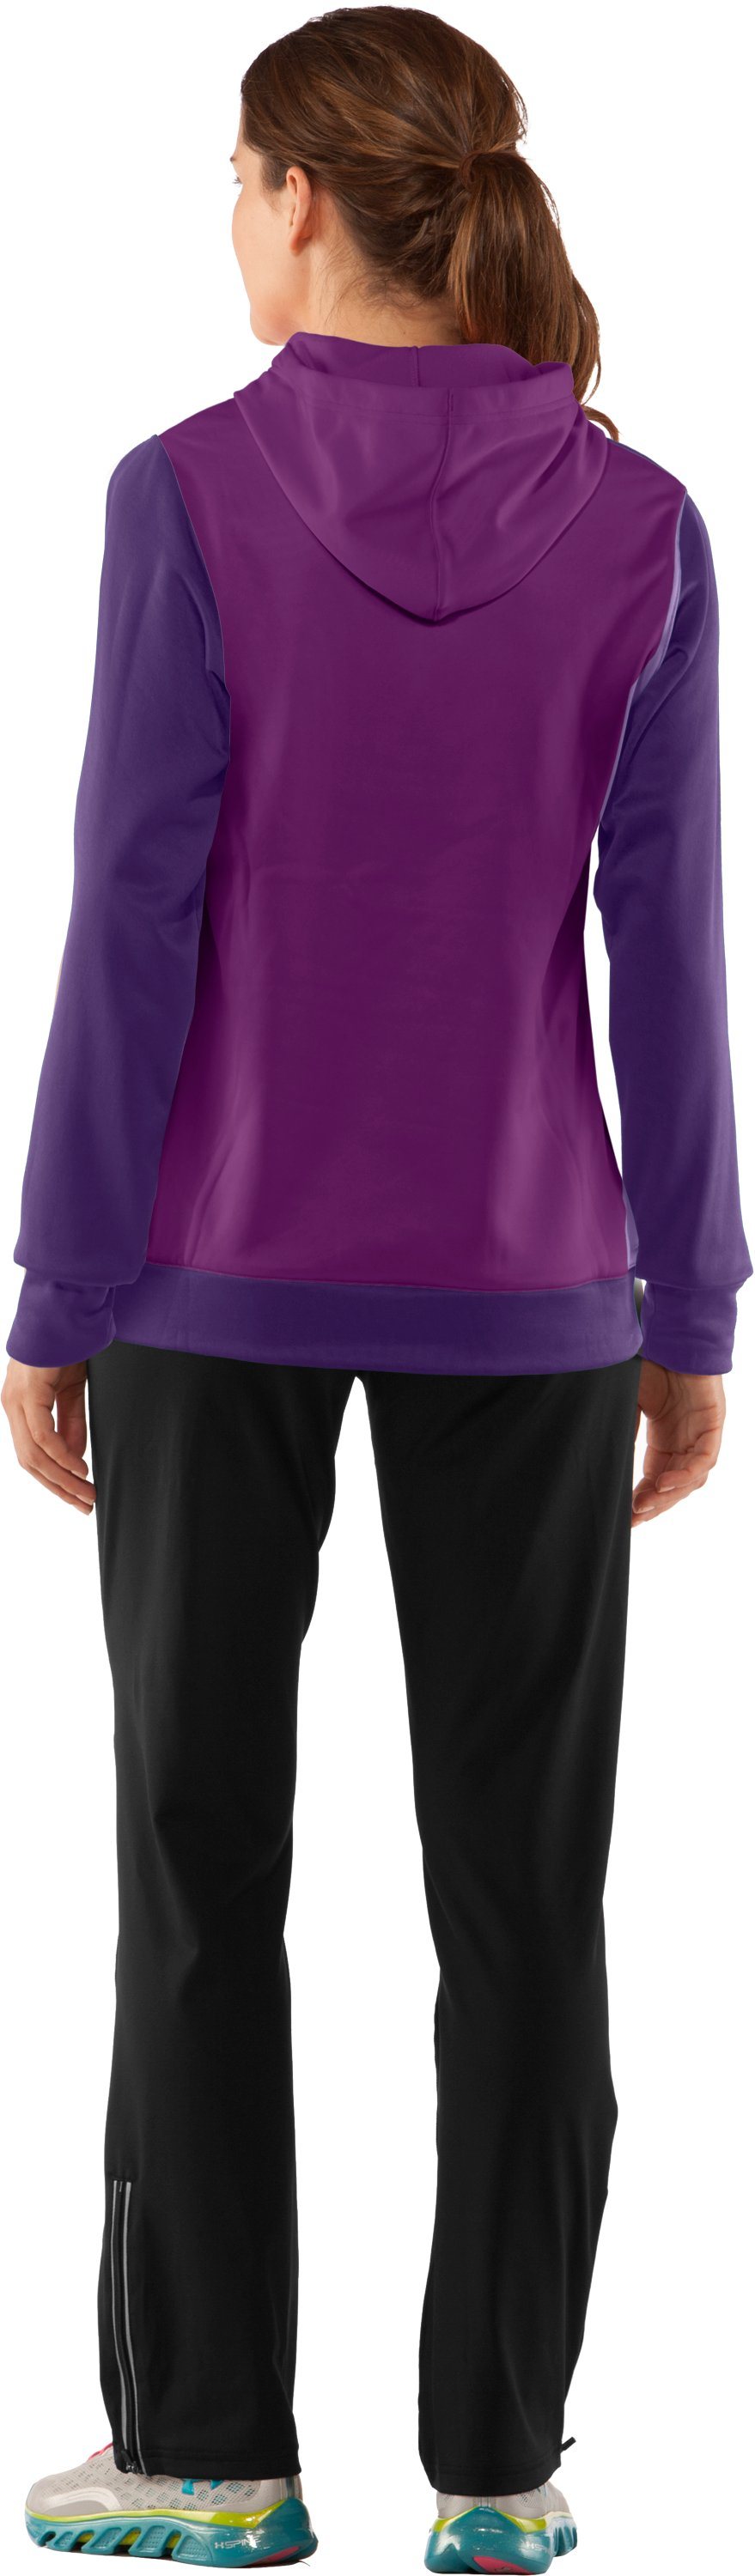 Women's Armour® Fleece Divide Hoodie, Zone, Back